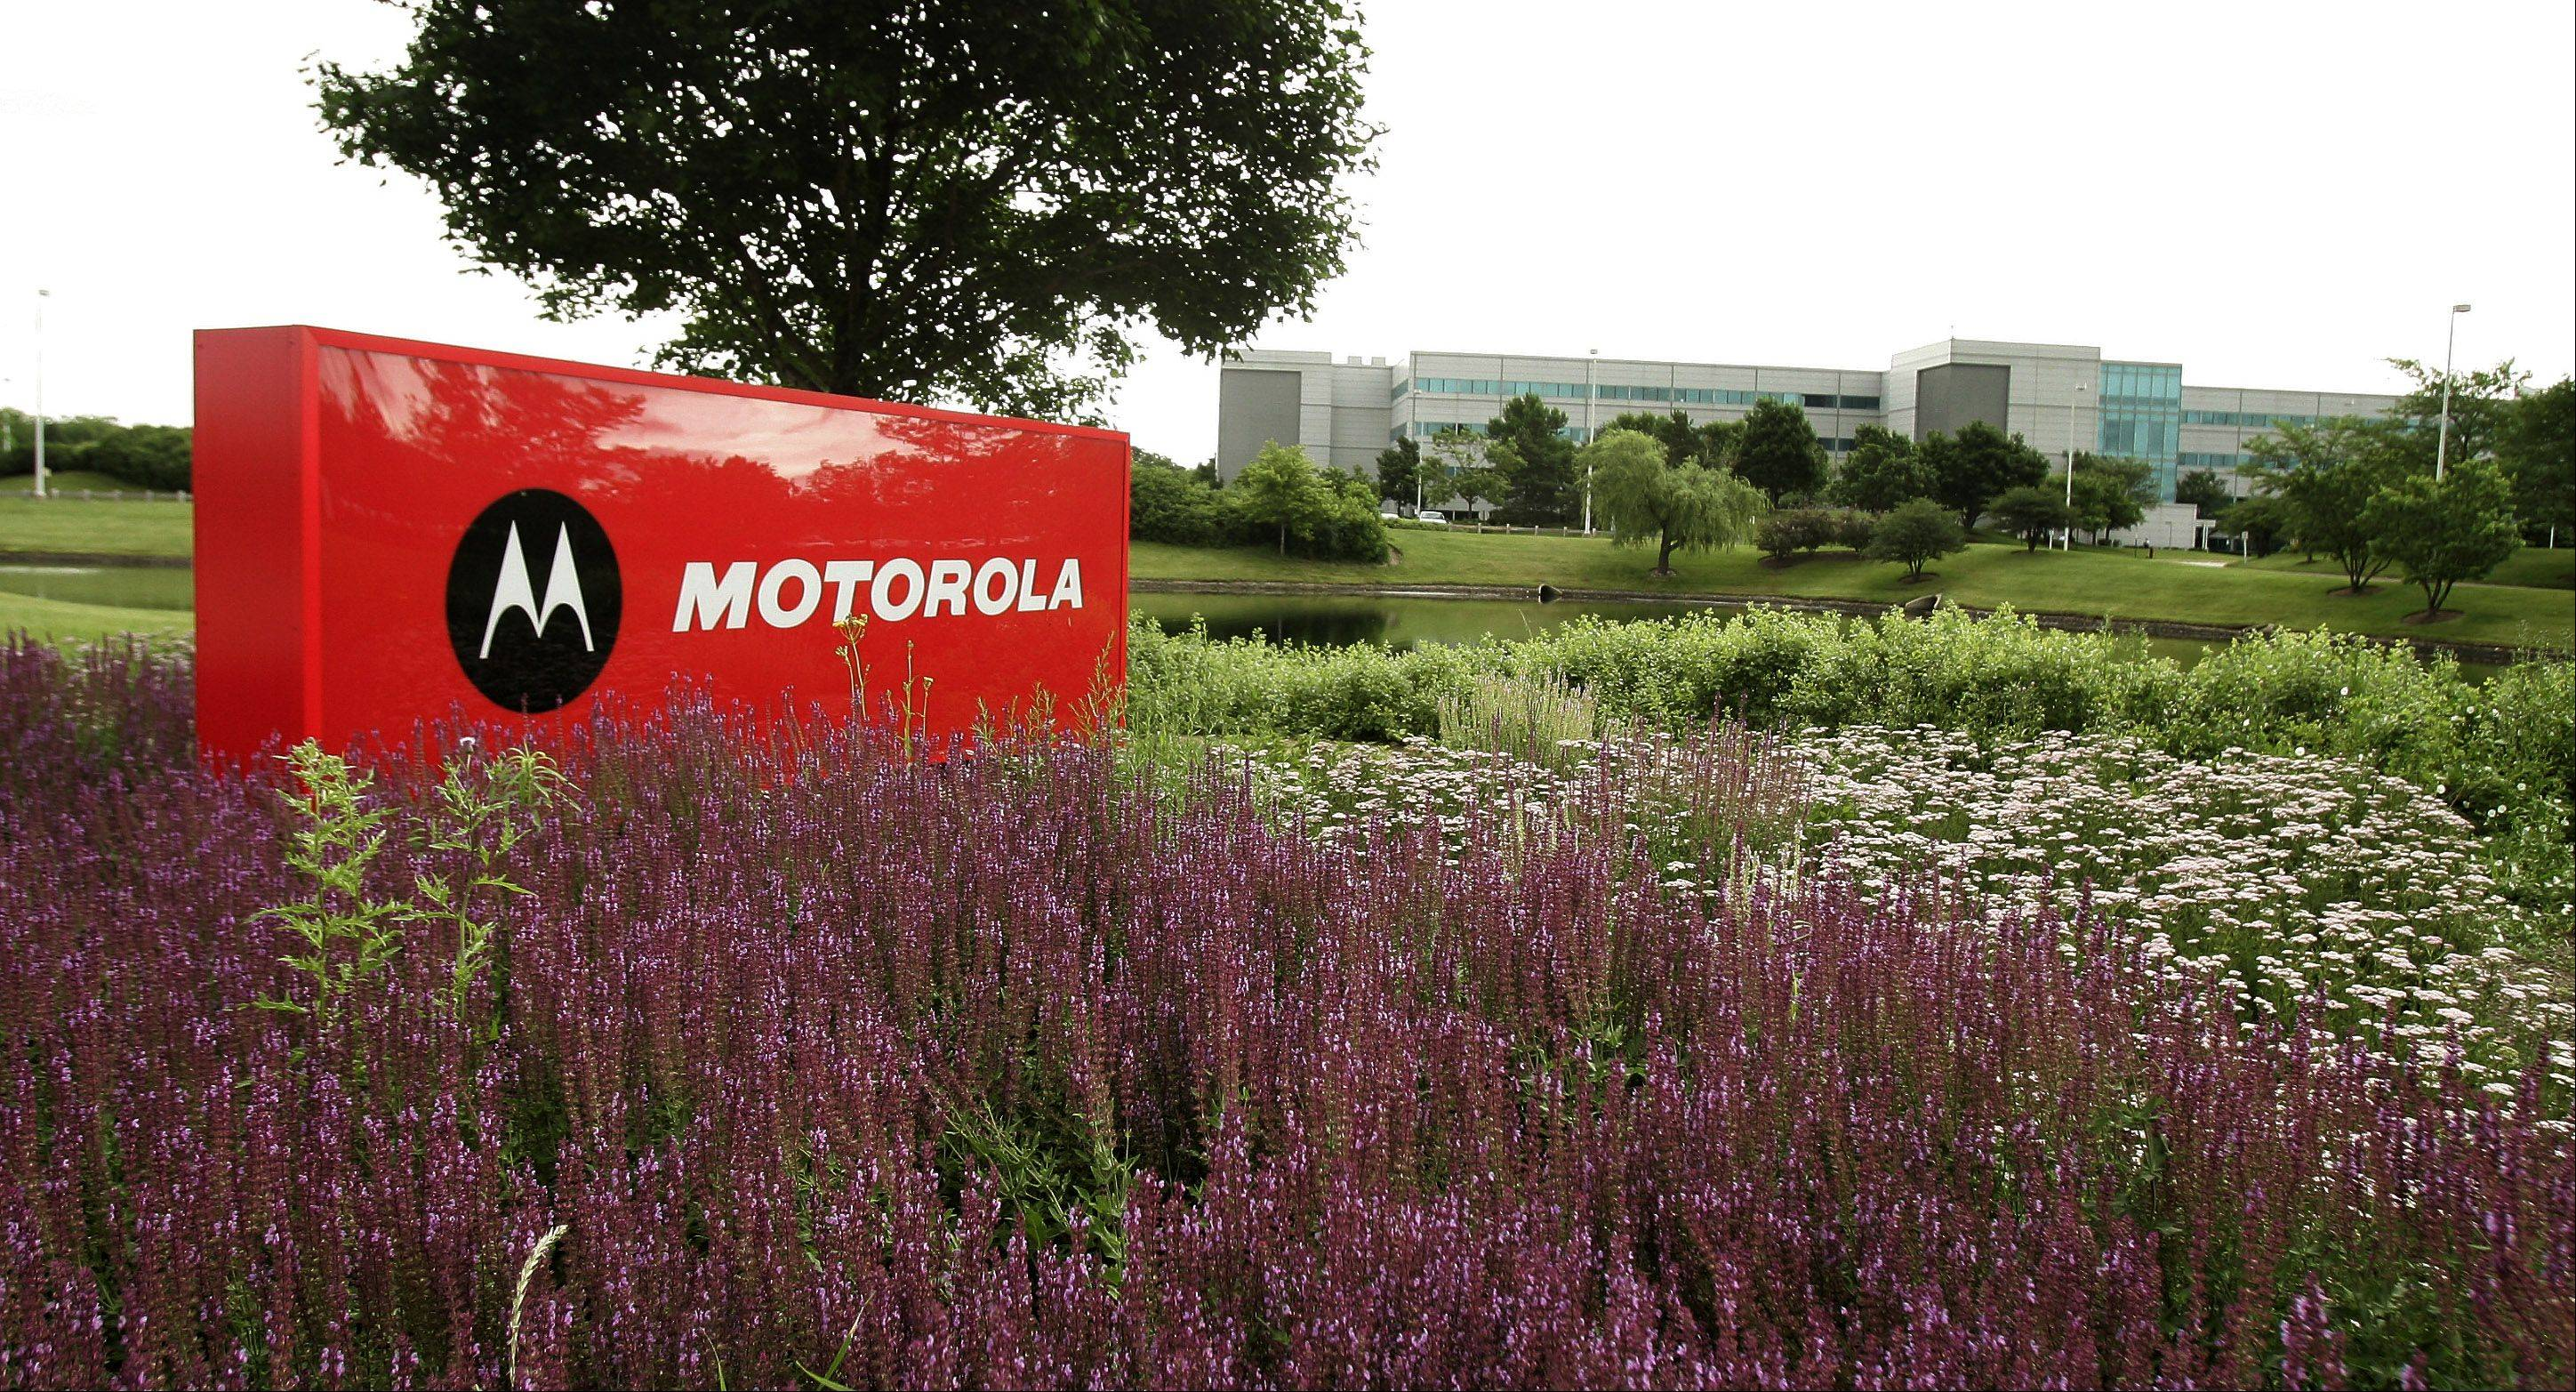 About 700 people are losing their jobs at Motorola Mobility in Libertyville as part of Google Inc. plans to cut about 4,000 positions from that unit.